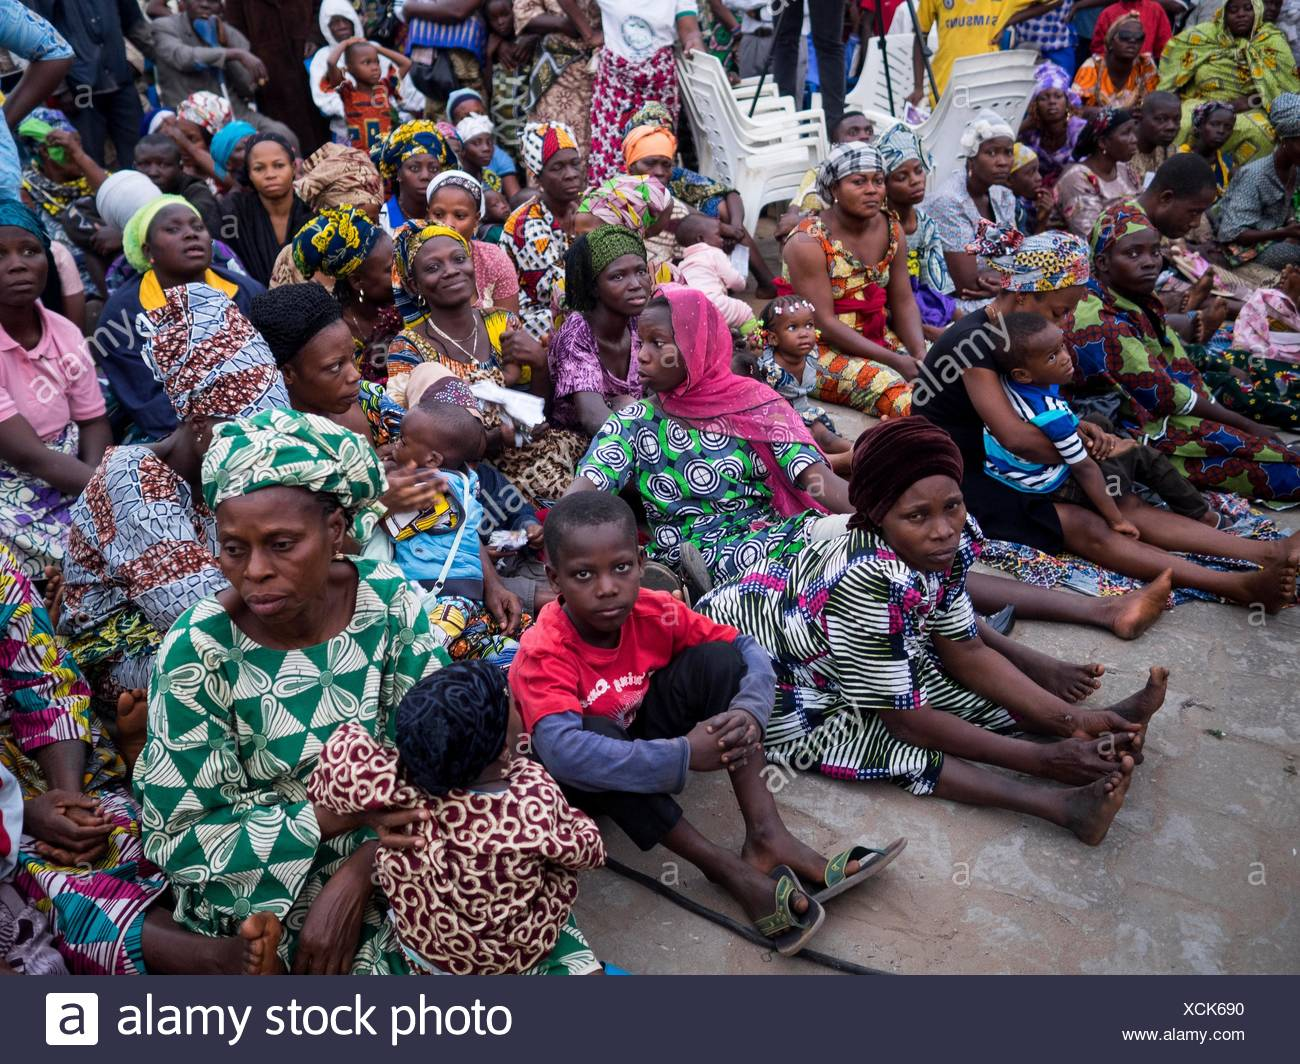 People with sick relatives attending Ladonna Osborn Christian Faith Healer show. - Stock Image